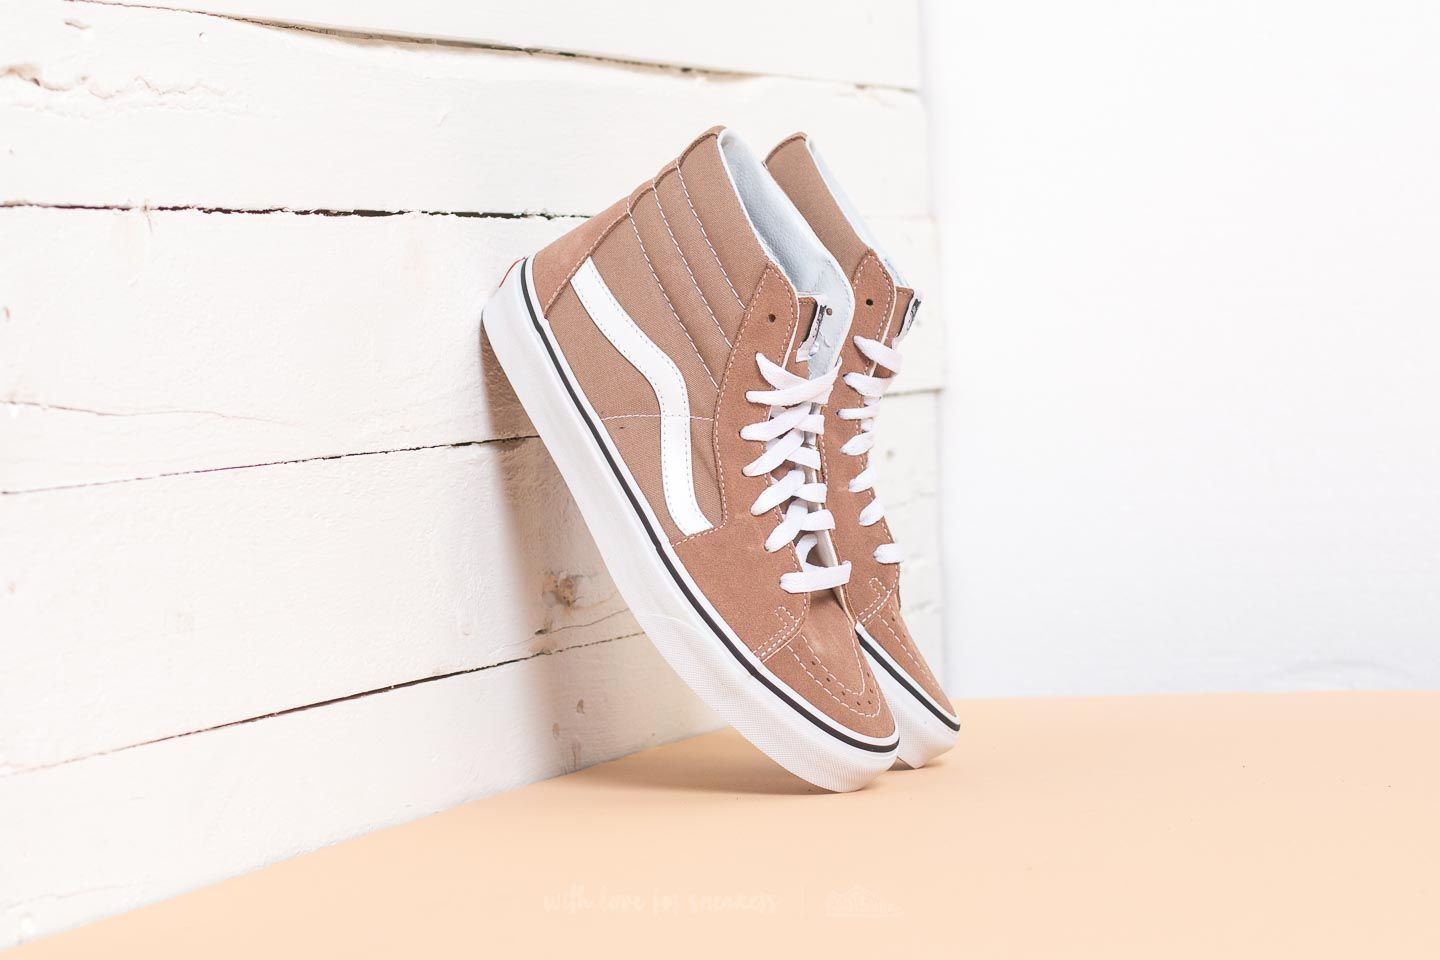 Vans Sk8-hi Tigers Eye/ True White